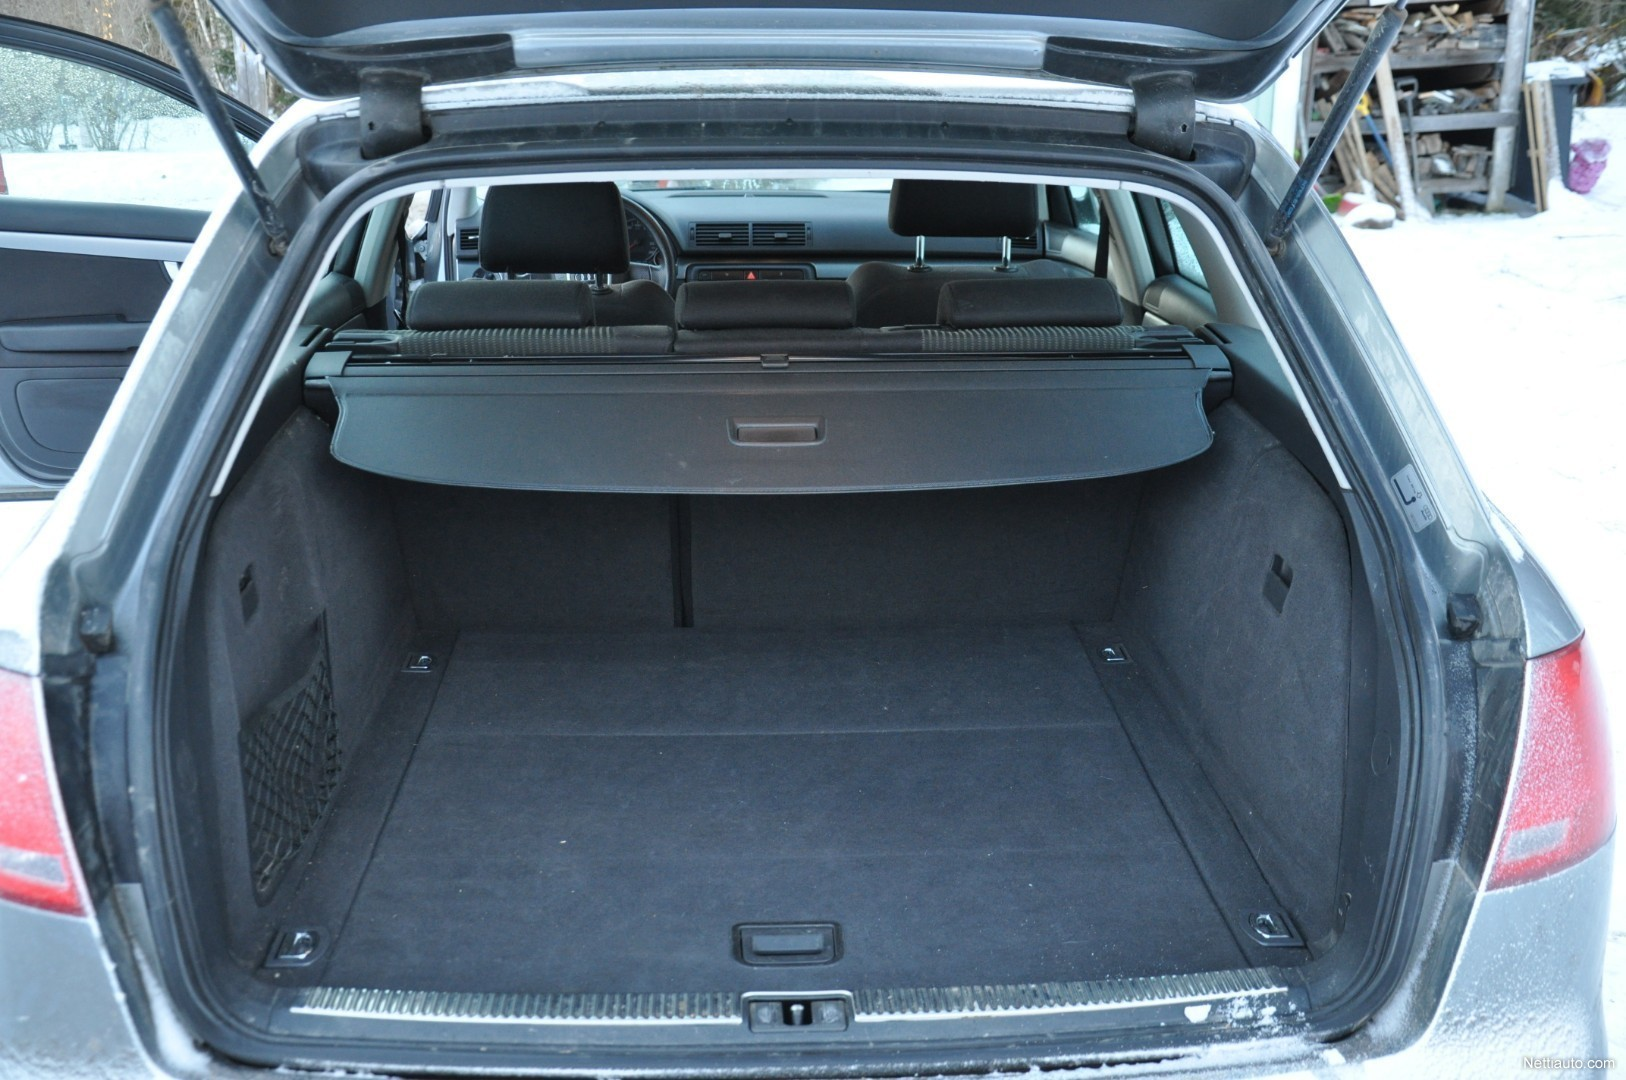 Audi A4 Avant 20 Tdi 103 Sport Edition Station Wagon 2005 Used 1930 Ford Model A Fuel Filter Add To Compare